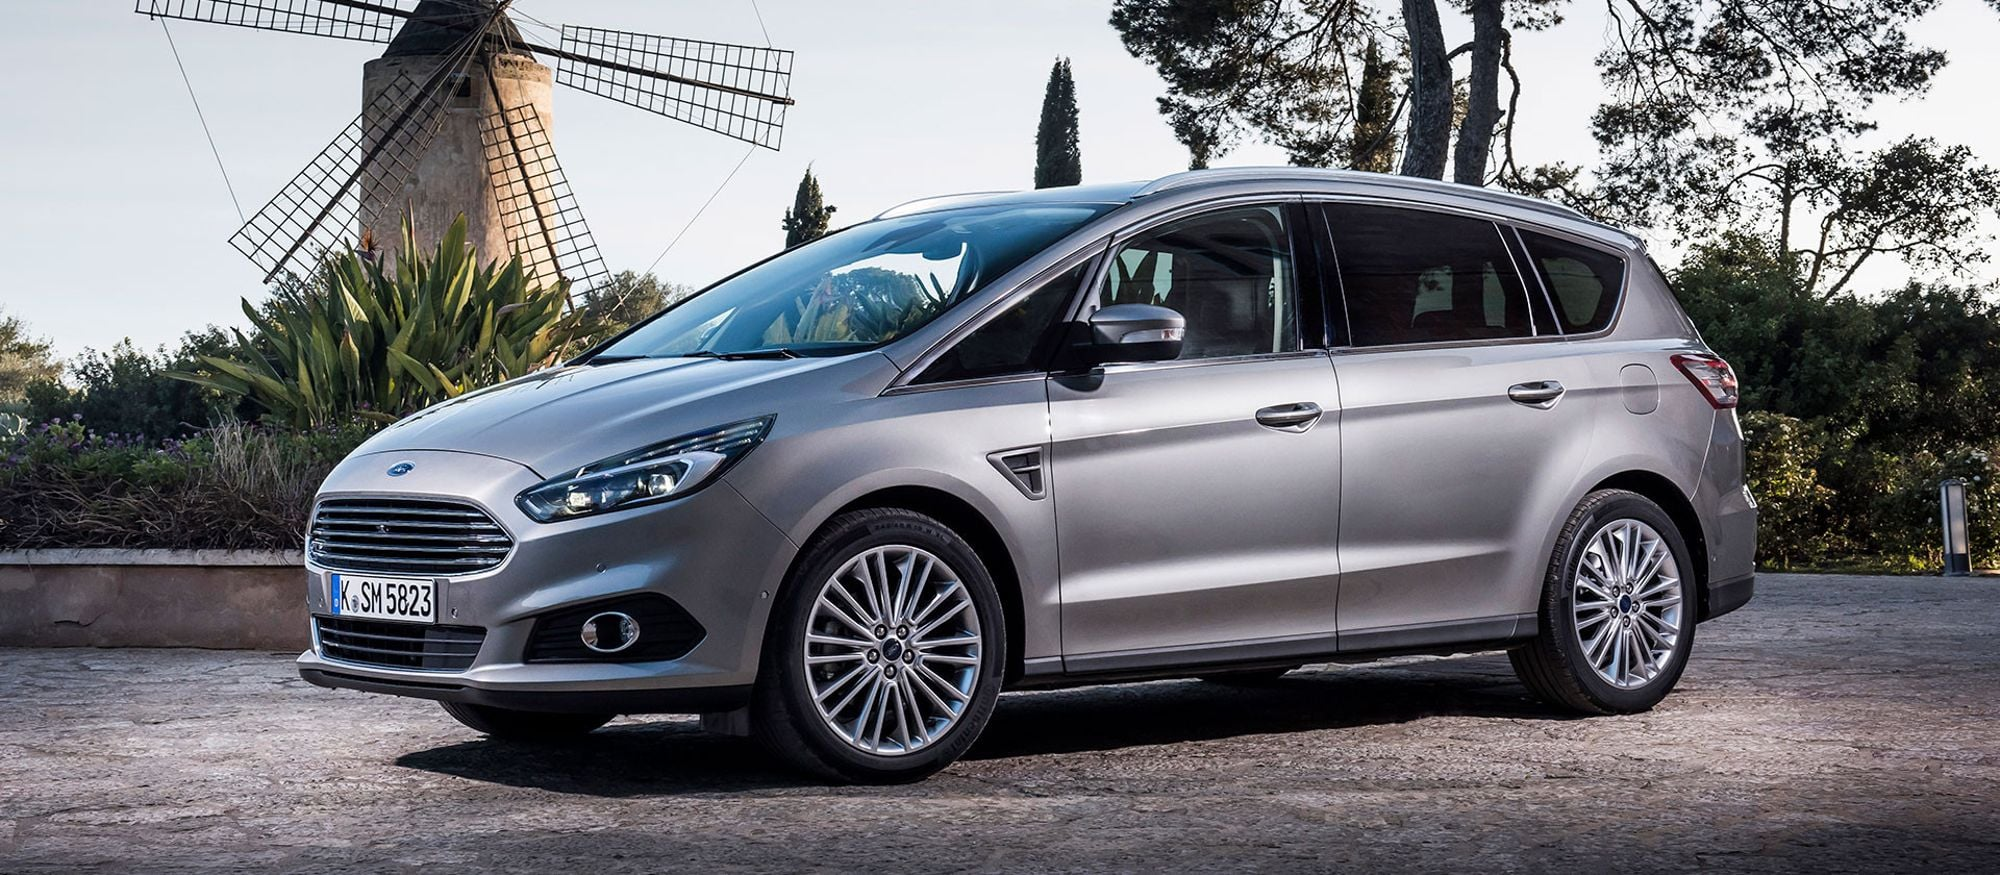 ford_s_max_01